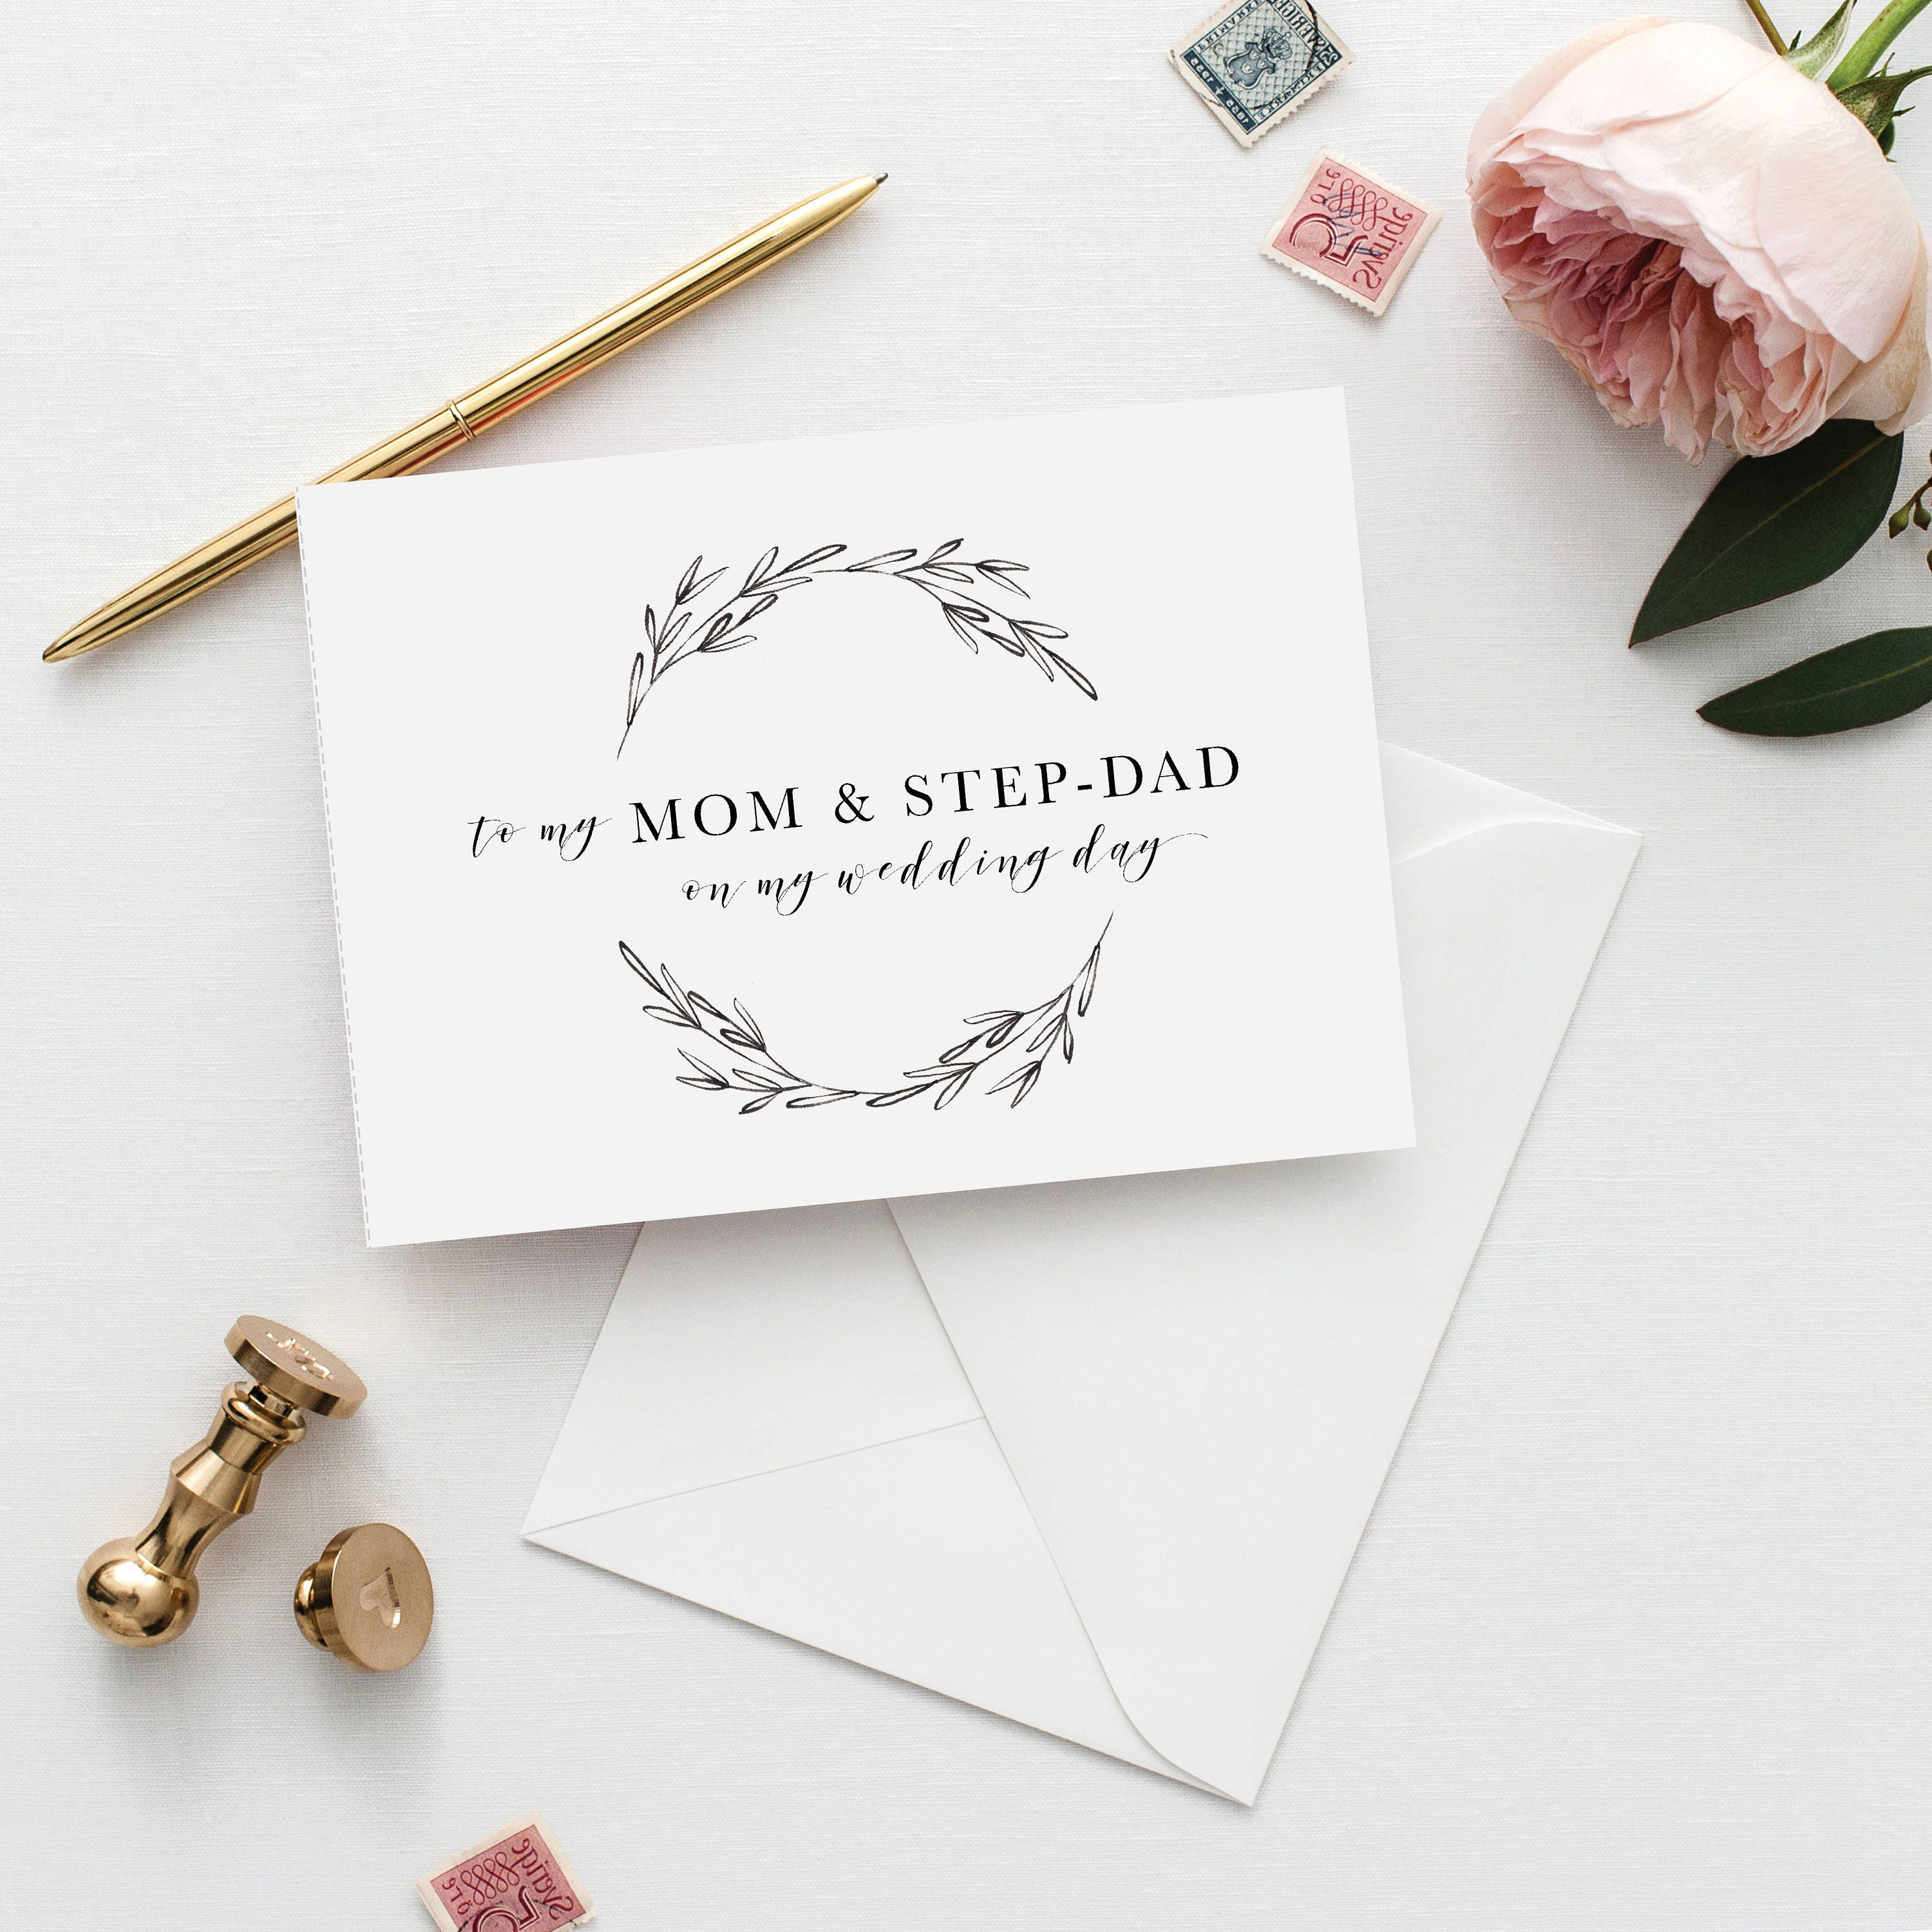 Printable 5x7 To My Mom And Step Dad Card To My Mum And Step Dad